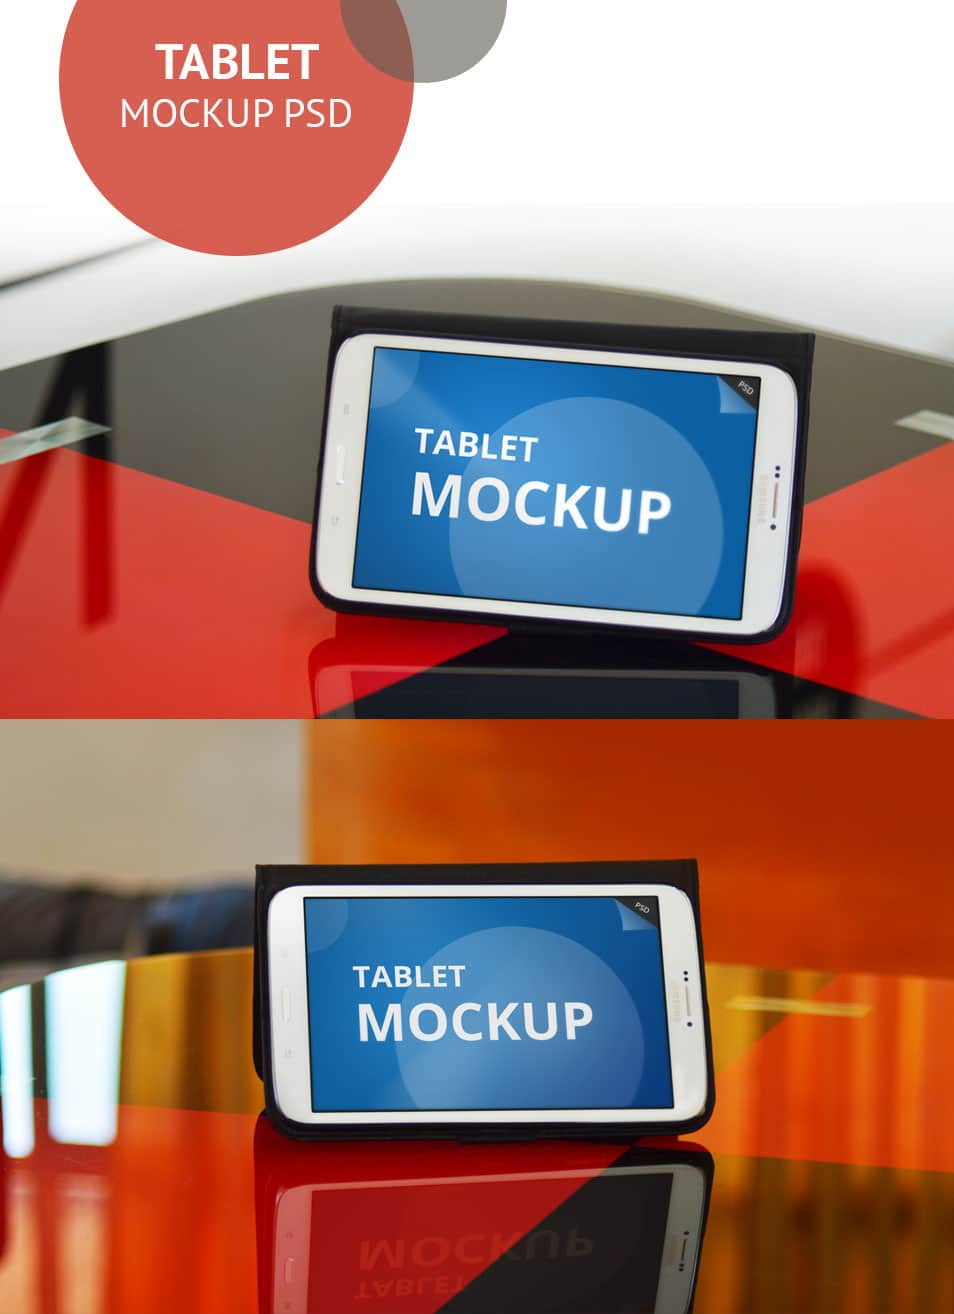 Tablet Mockup PSD - cssauthor.com